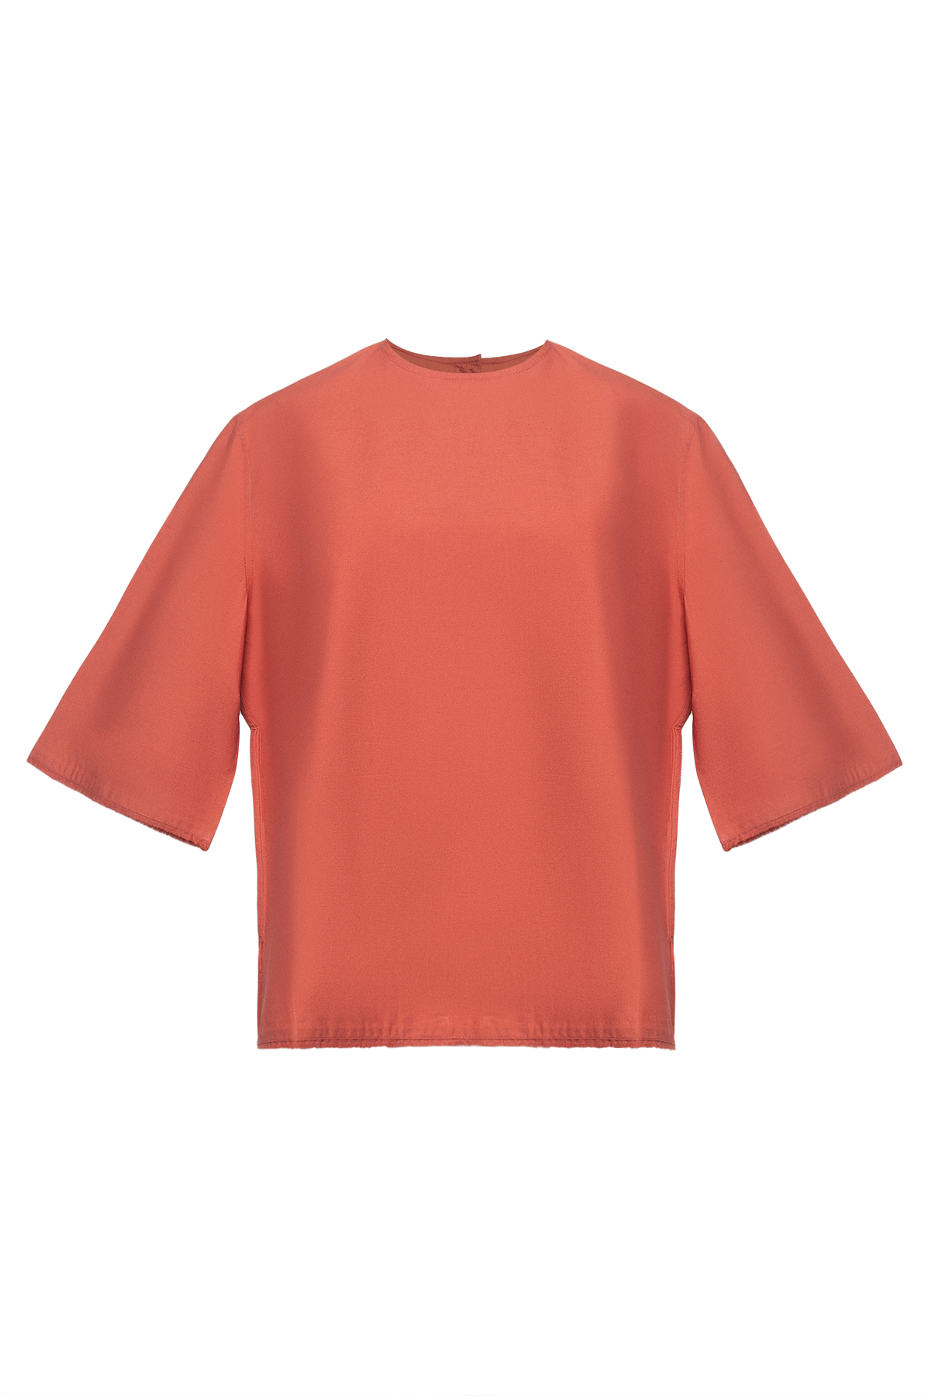 Frayed Edges Cotton Crew Neck Shirt